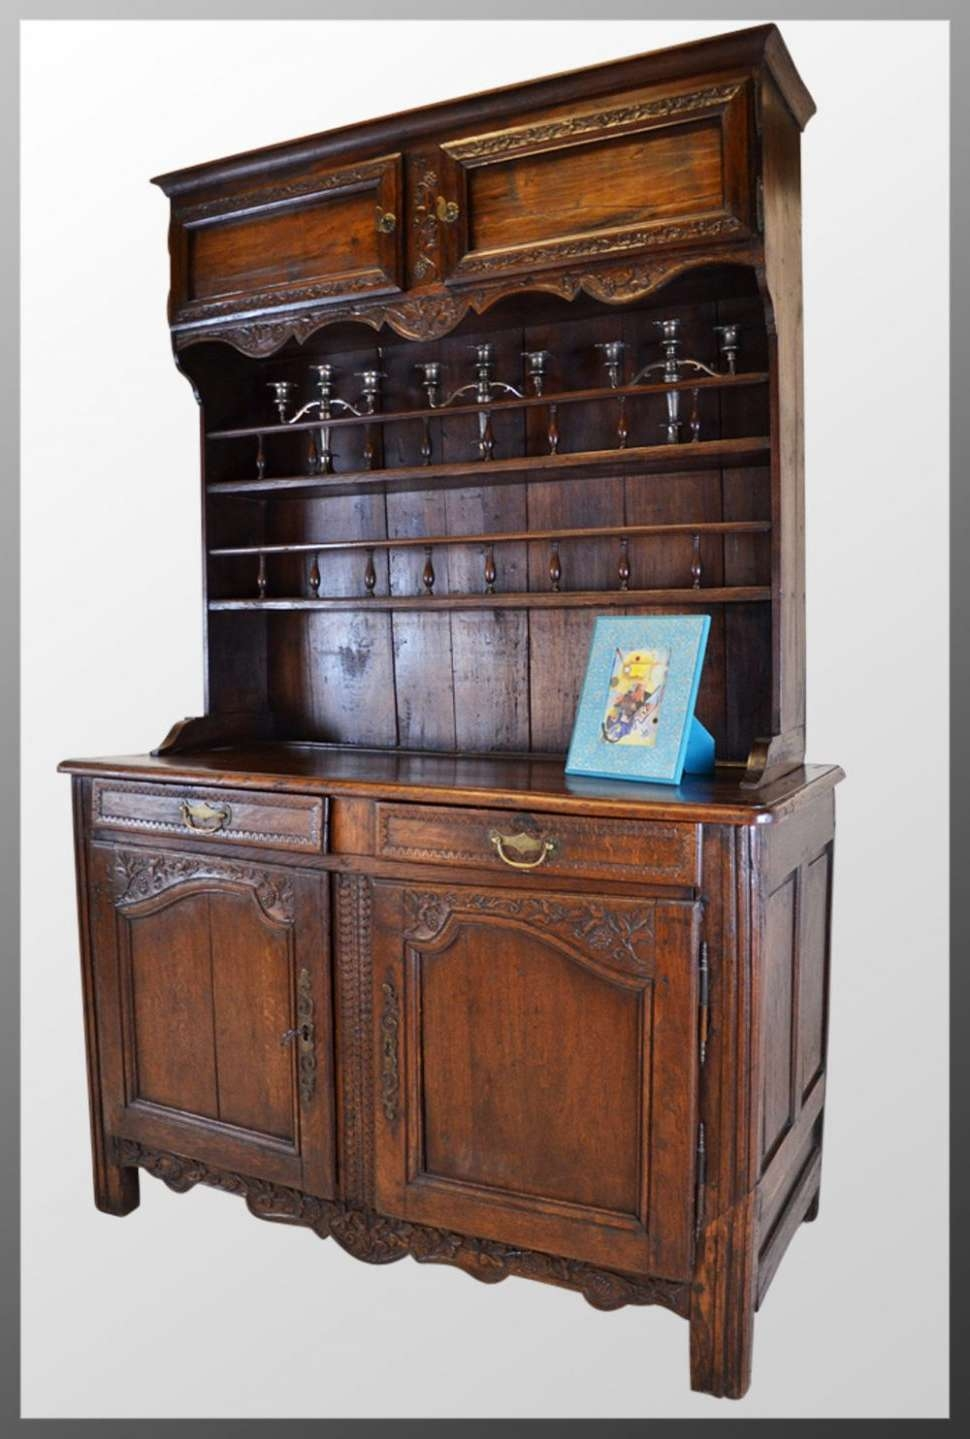 Kitchen Cabinet : Dining Room Sideboard Hutches And Buffets Inside Sideboards And Hutches (View 9 of 20)